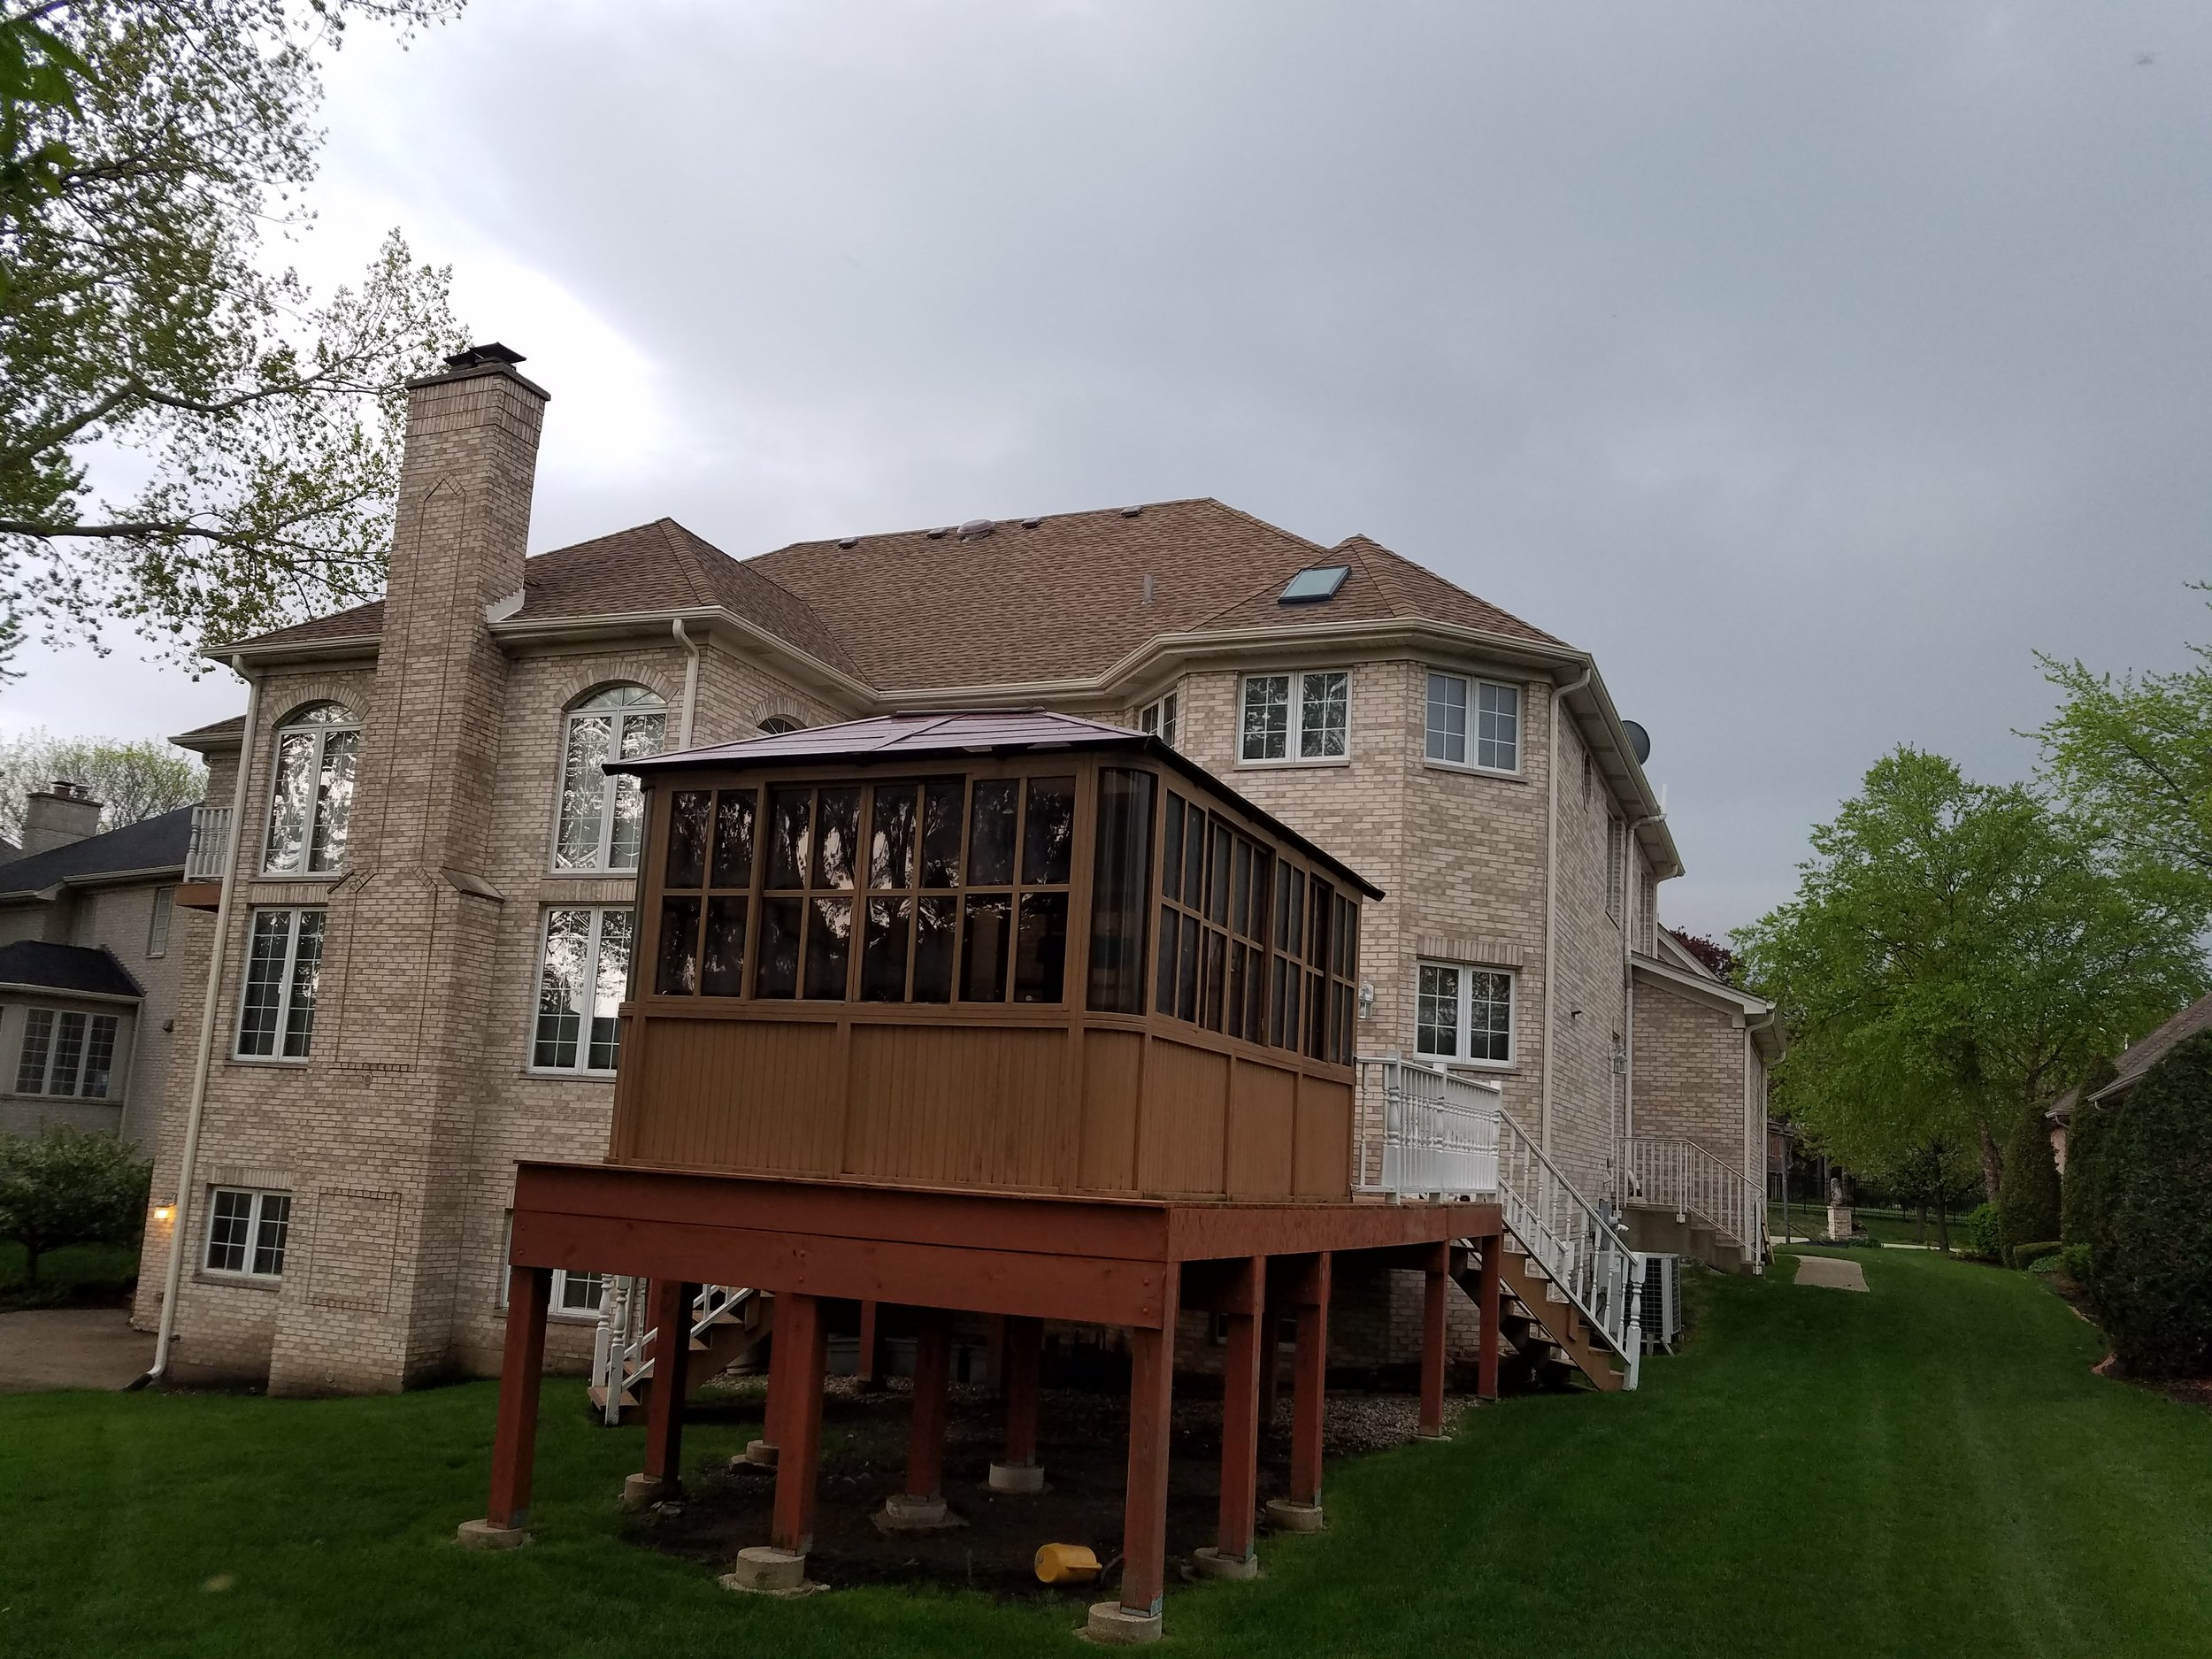 Feze Roofing - After Photo - Project Location: Schaumburg, IL